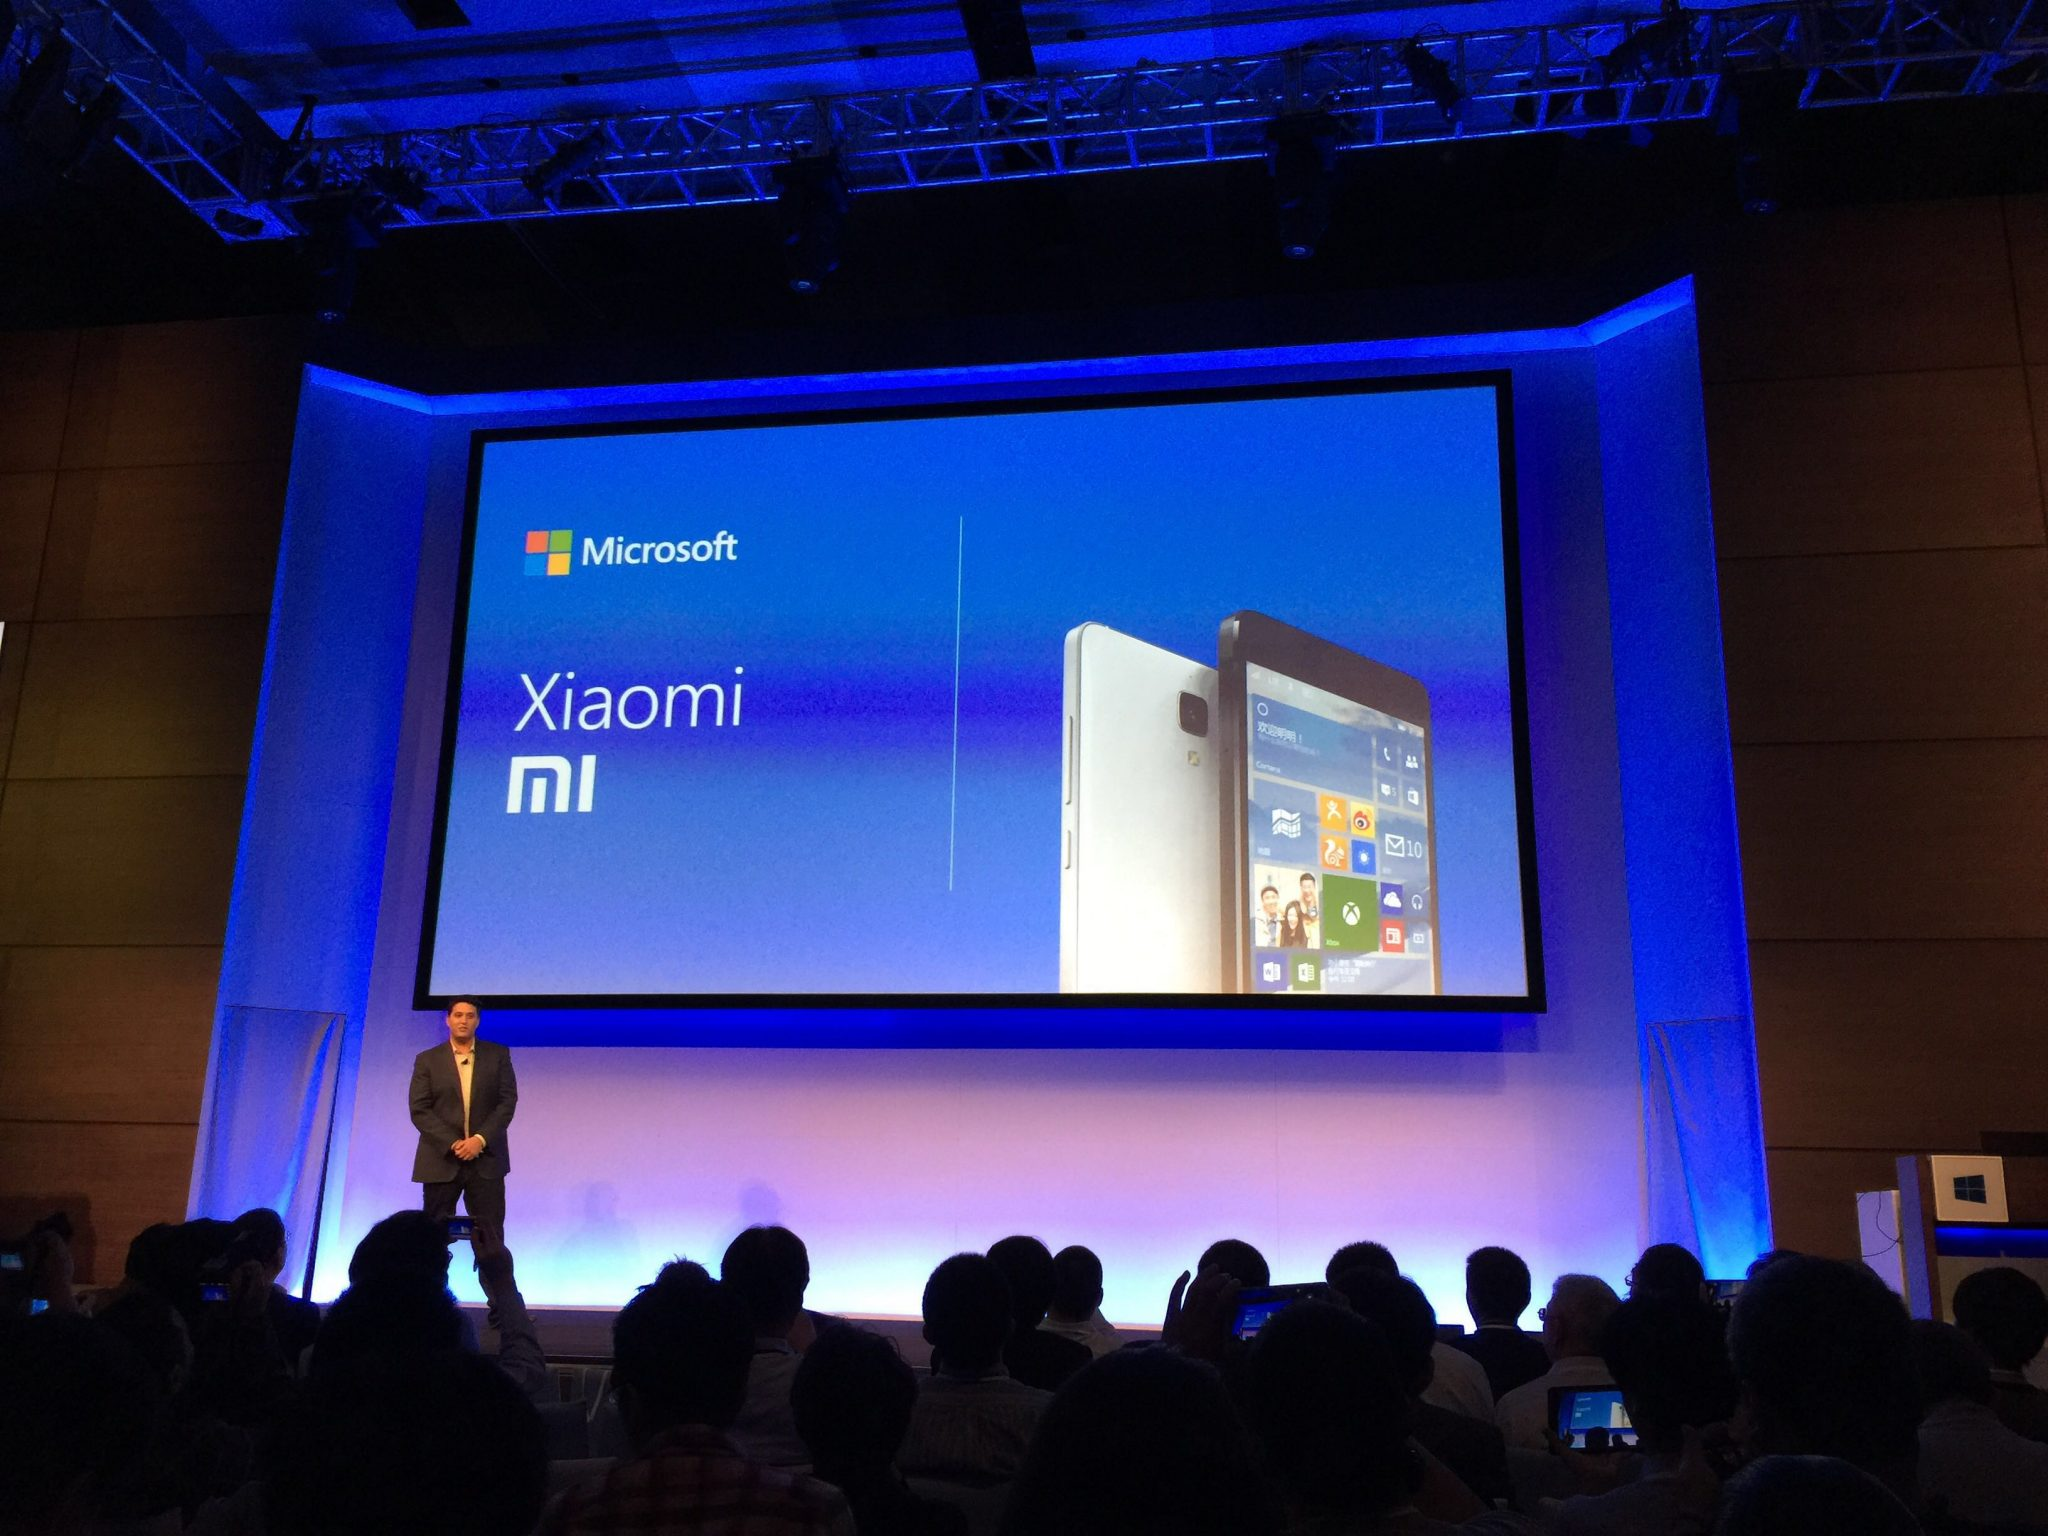 Xiaomi To Launch Windows 10 Based Smartphone Range Soon